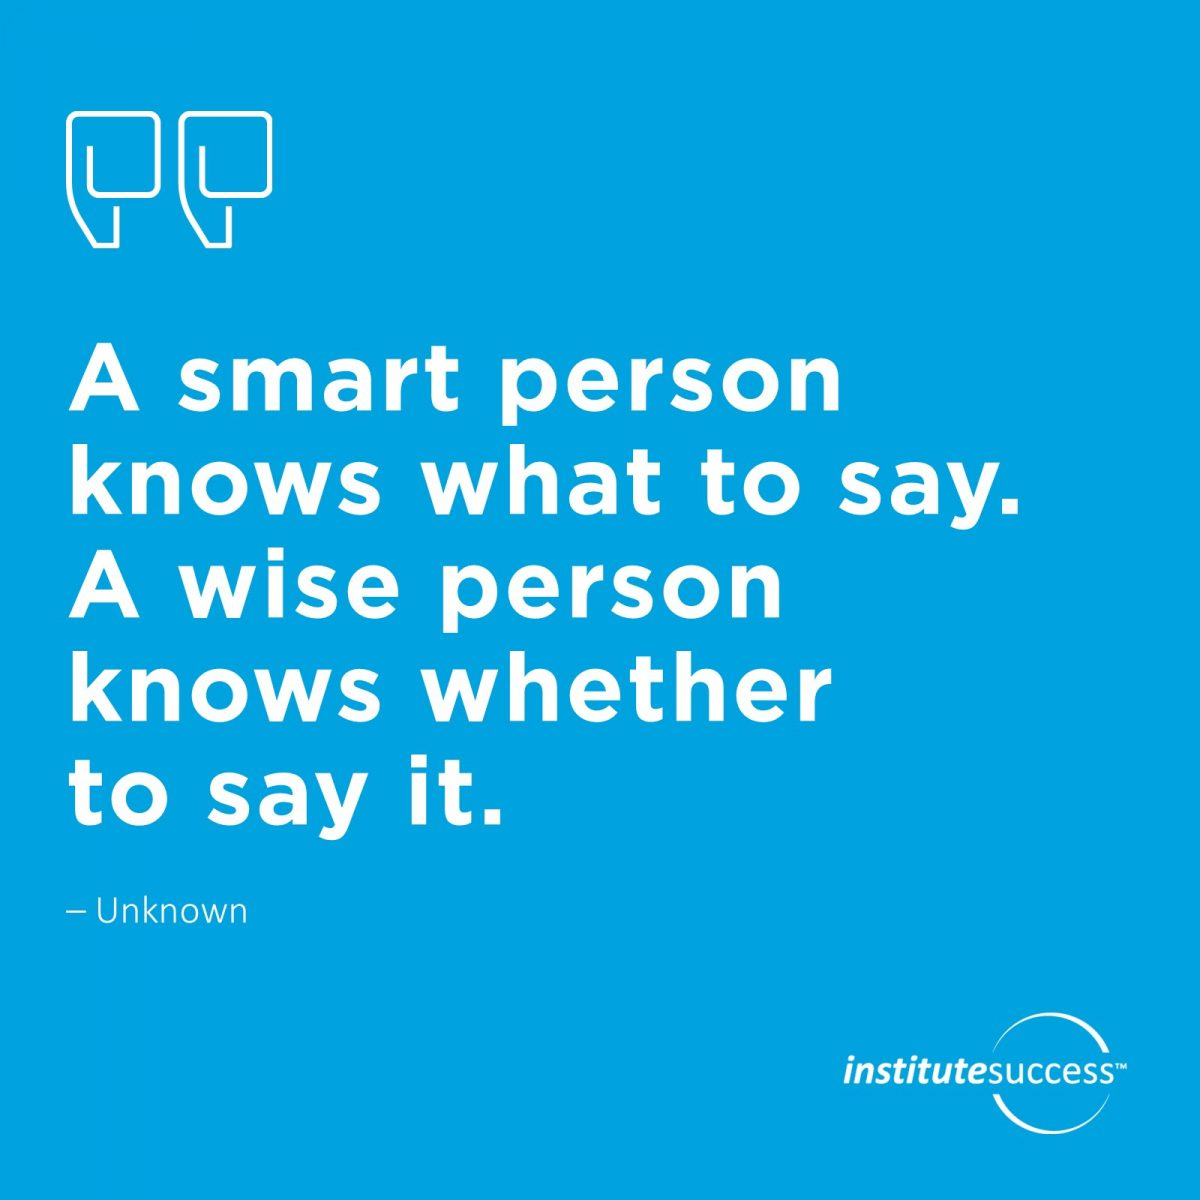 A smart person knows what to say. A wise person knows whether to say it. Unknown